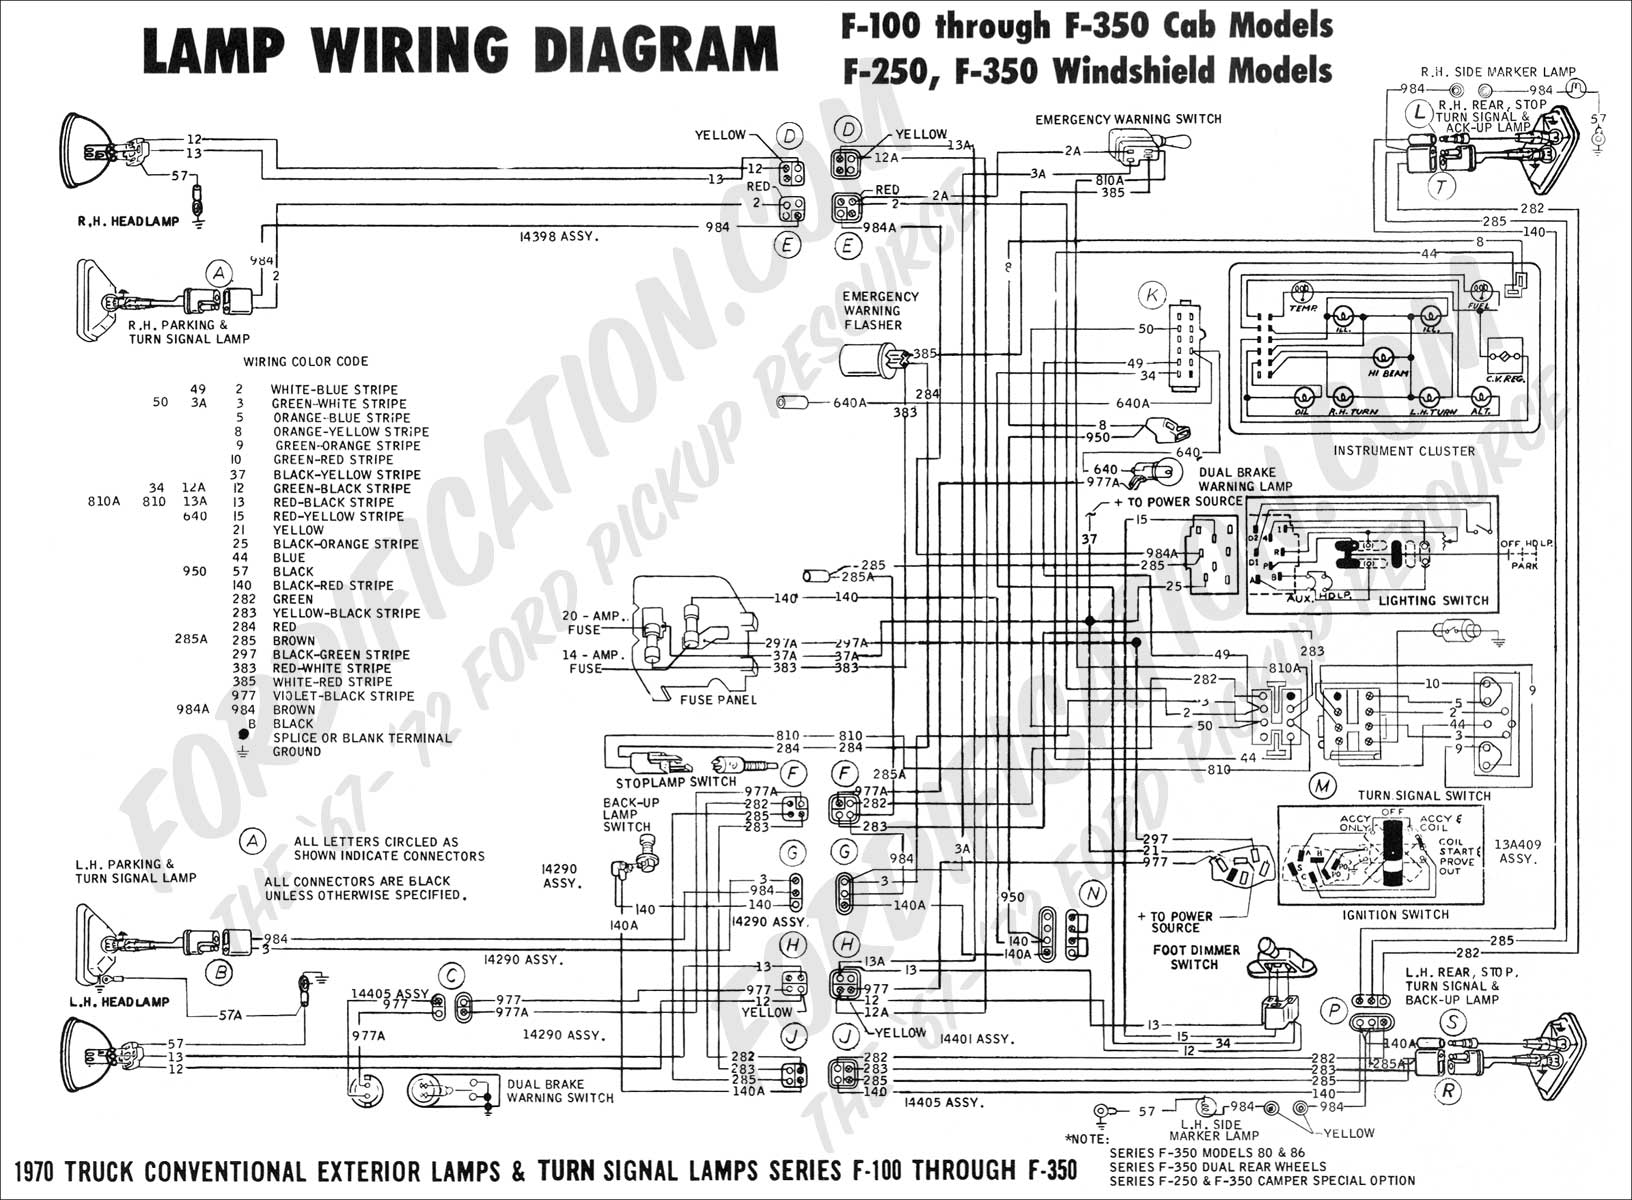 1990 Ford F 250 Ac Diagram - Rgo248ri.tistvanderschaaf.nl •  Ford F Wiring Diagram on 91 toyota pickup wiring diagram, 91 ford bronco parts, 1991 ford f-150 wiring diagram,